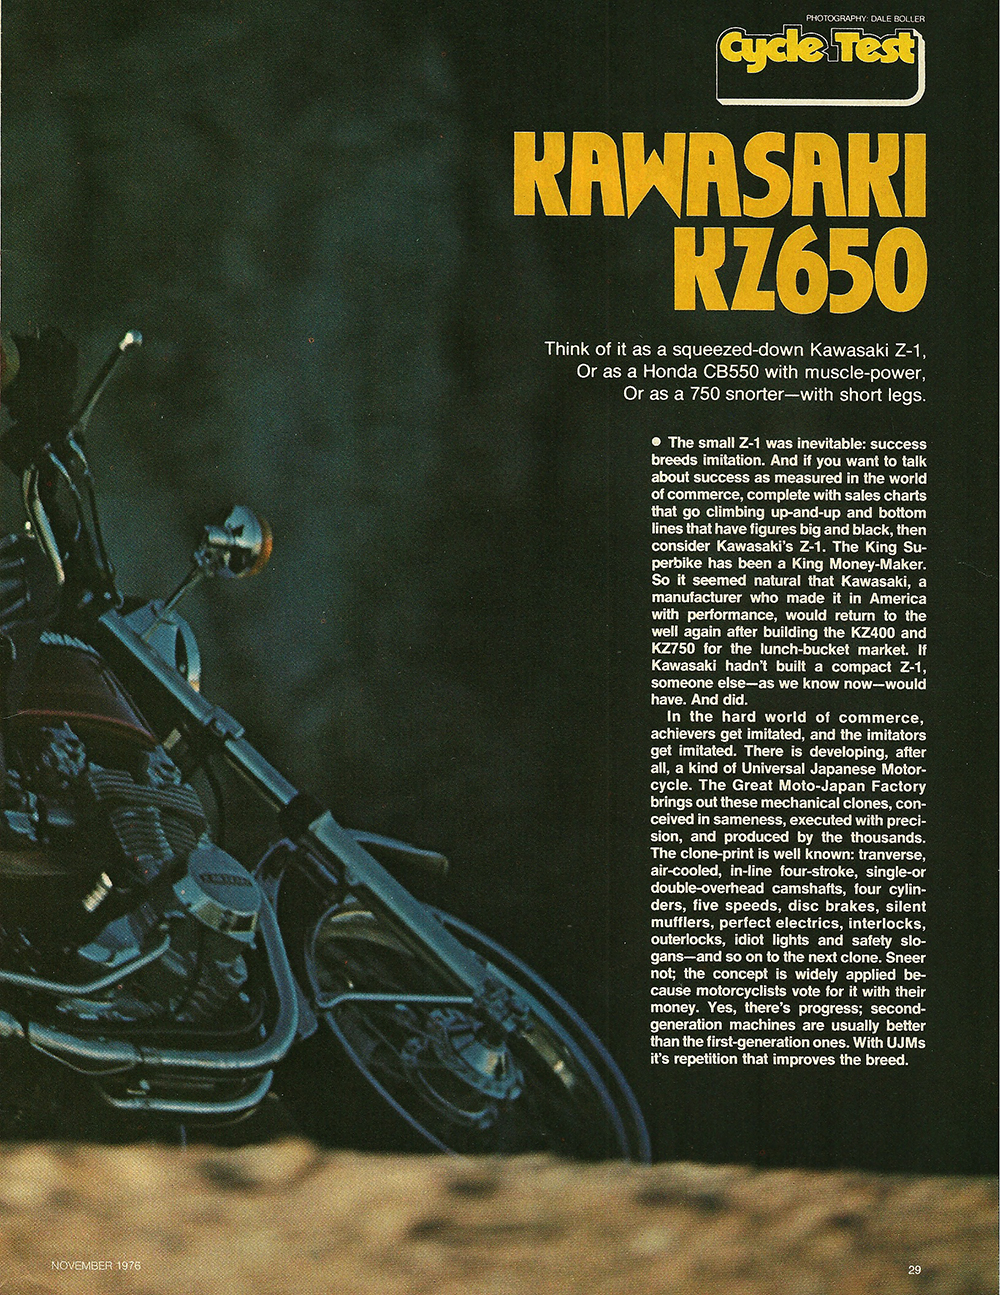 1976 Kawasaki KZ650 road test 02.jpg